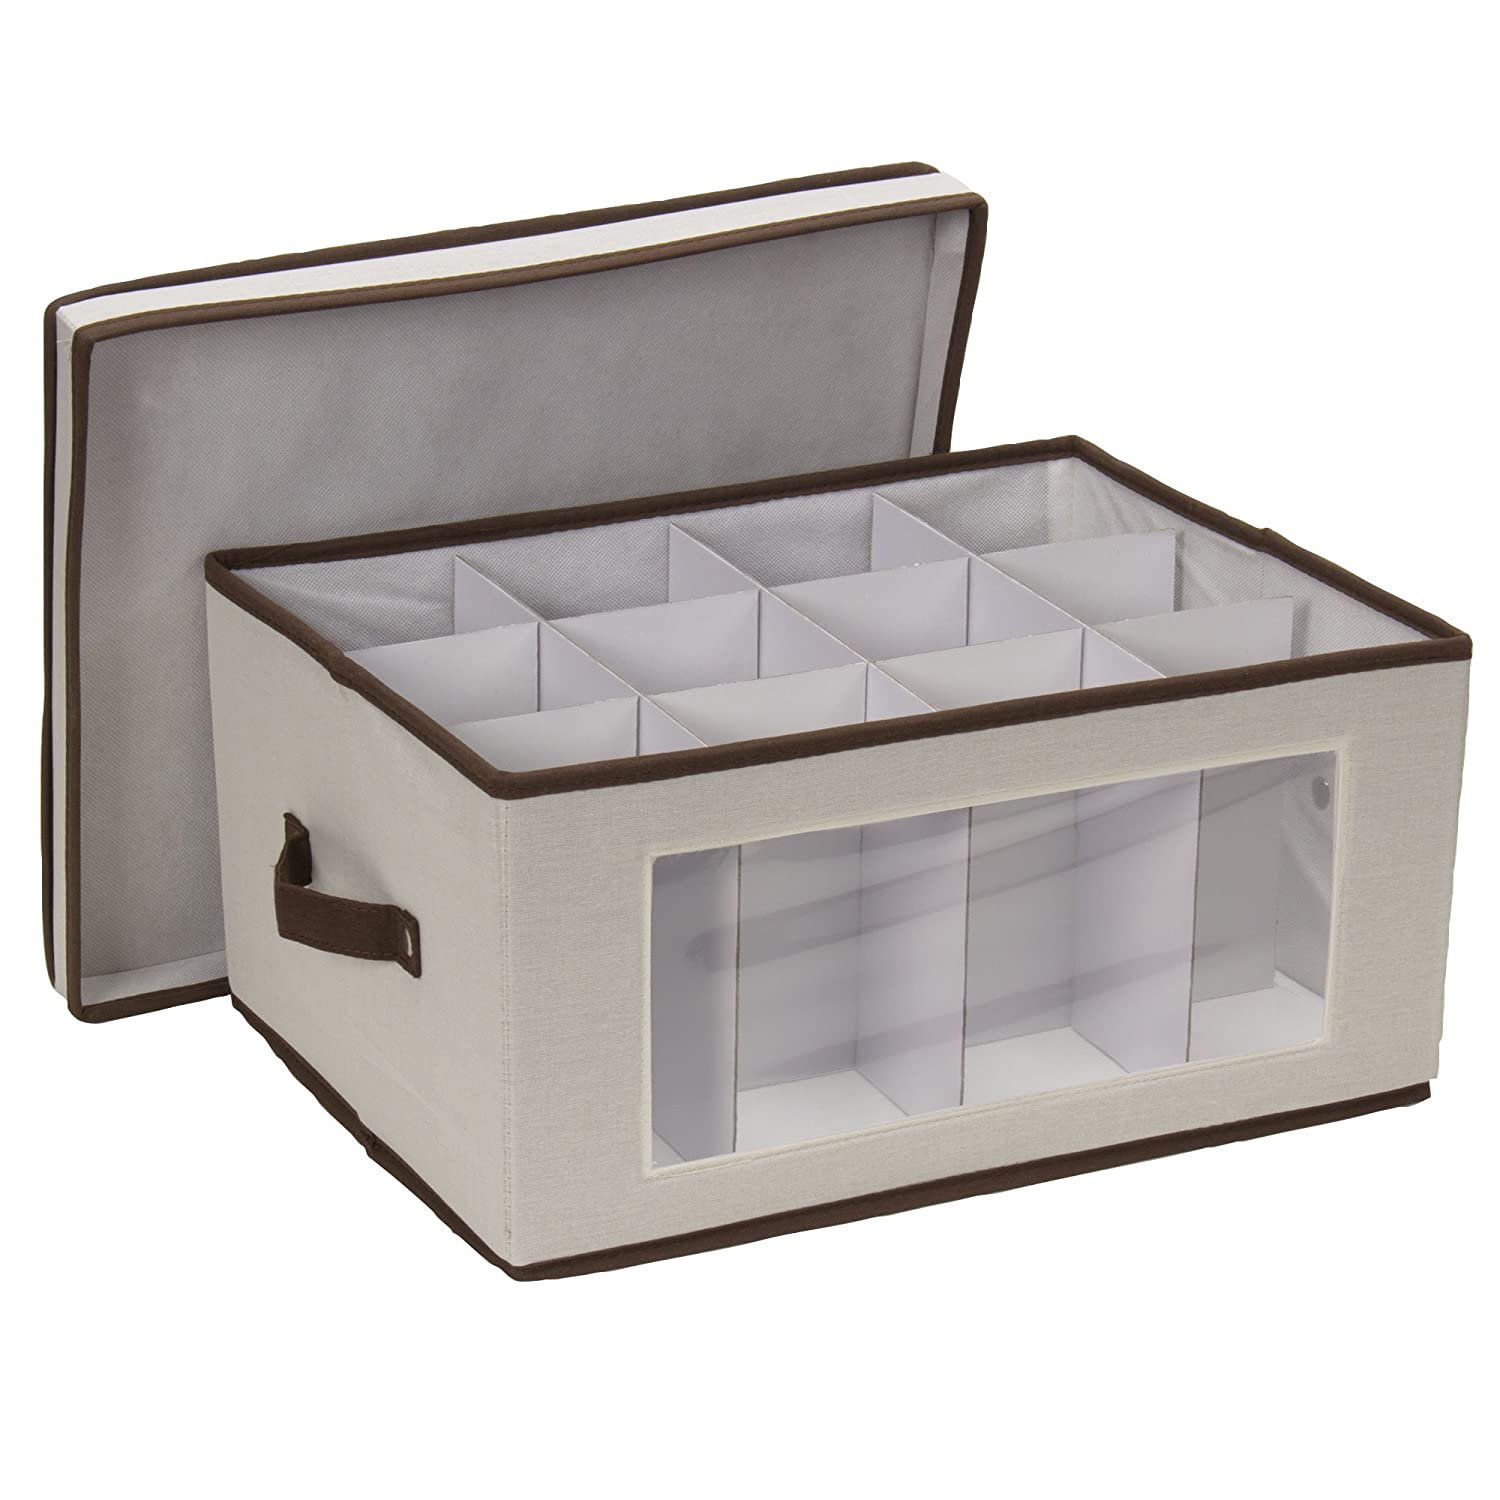 wine glass storage box. Amazon.com: Household Essentials 542 Vision Storage Box With Lid And Handles | Wine Balloon-Style Glasses Natural Canvas Brown Trim: Home \u0026 Glass R